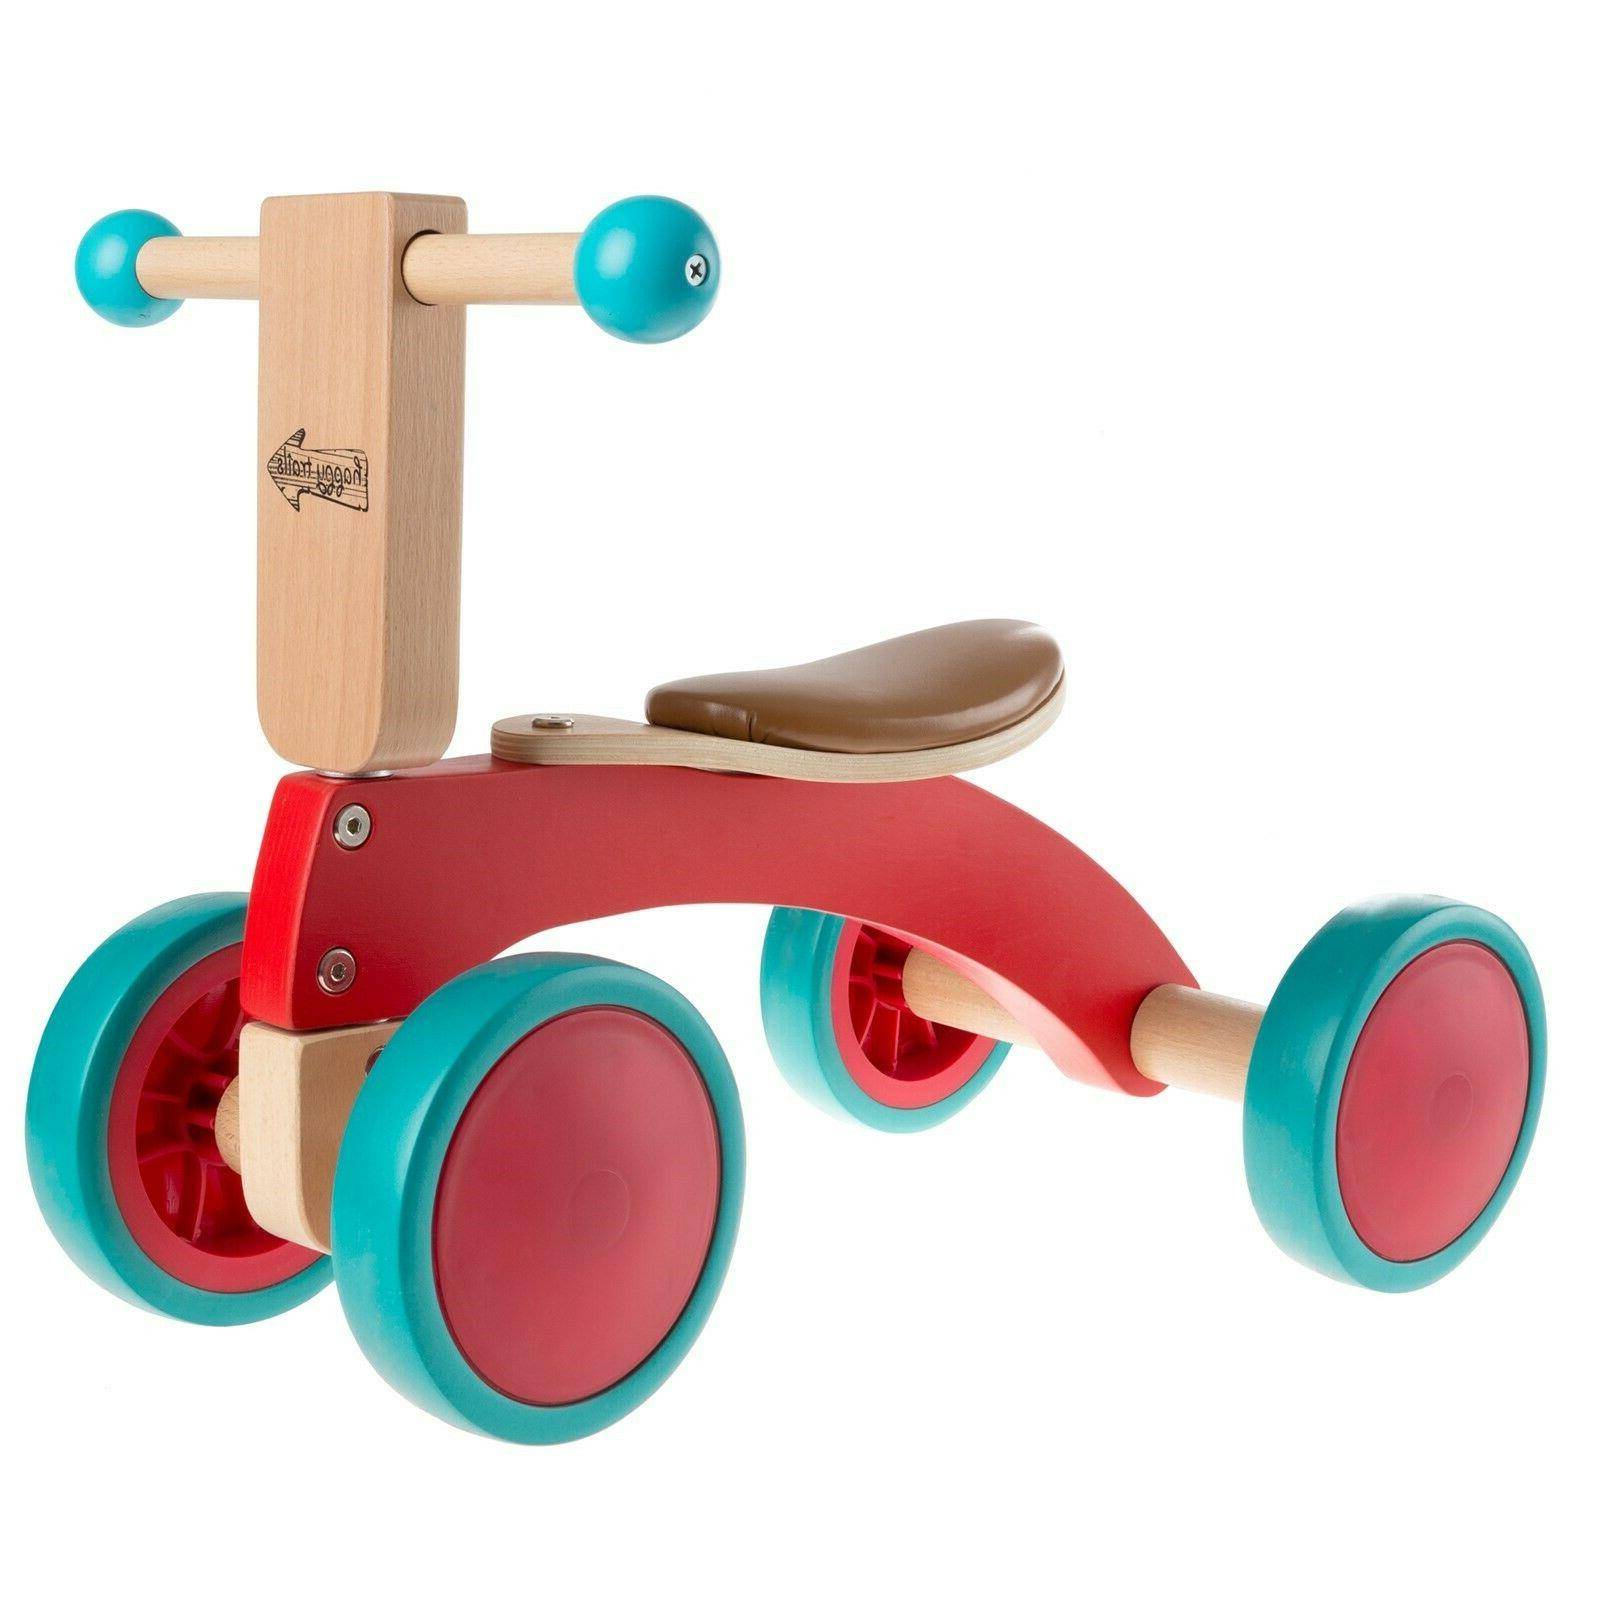 Walk Ride Wooden 4 Tricycle Seat 2 Yrs Old